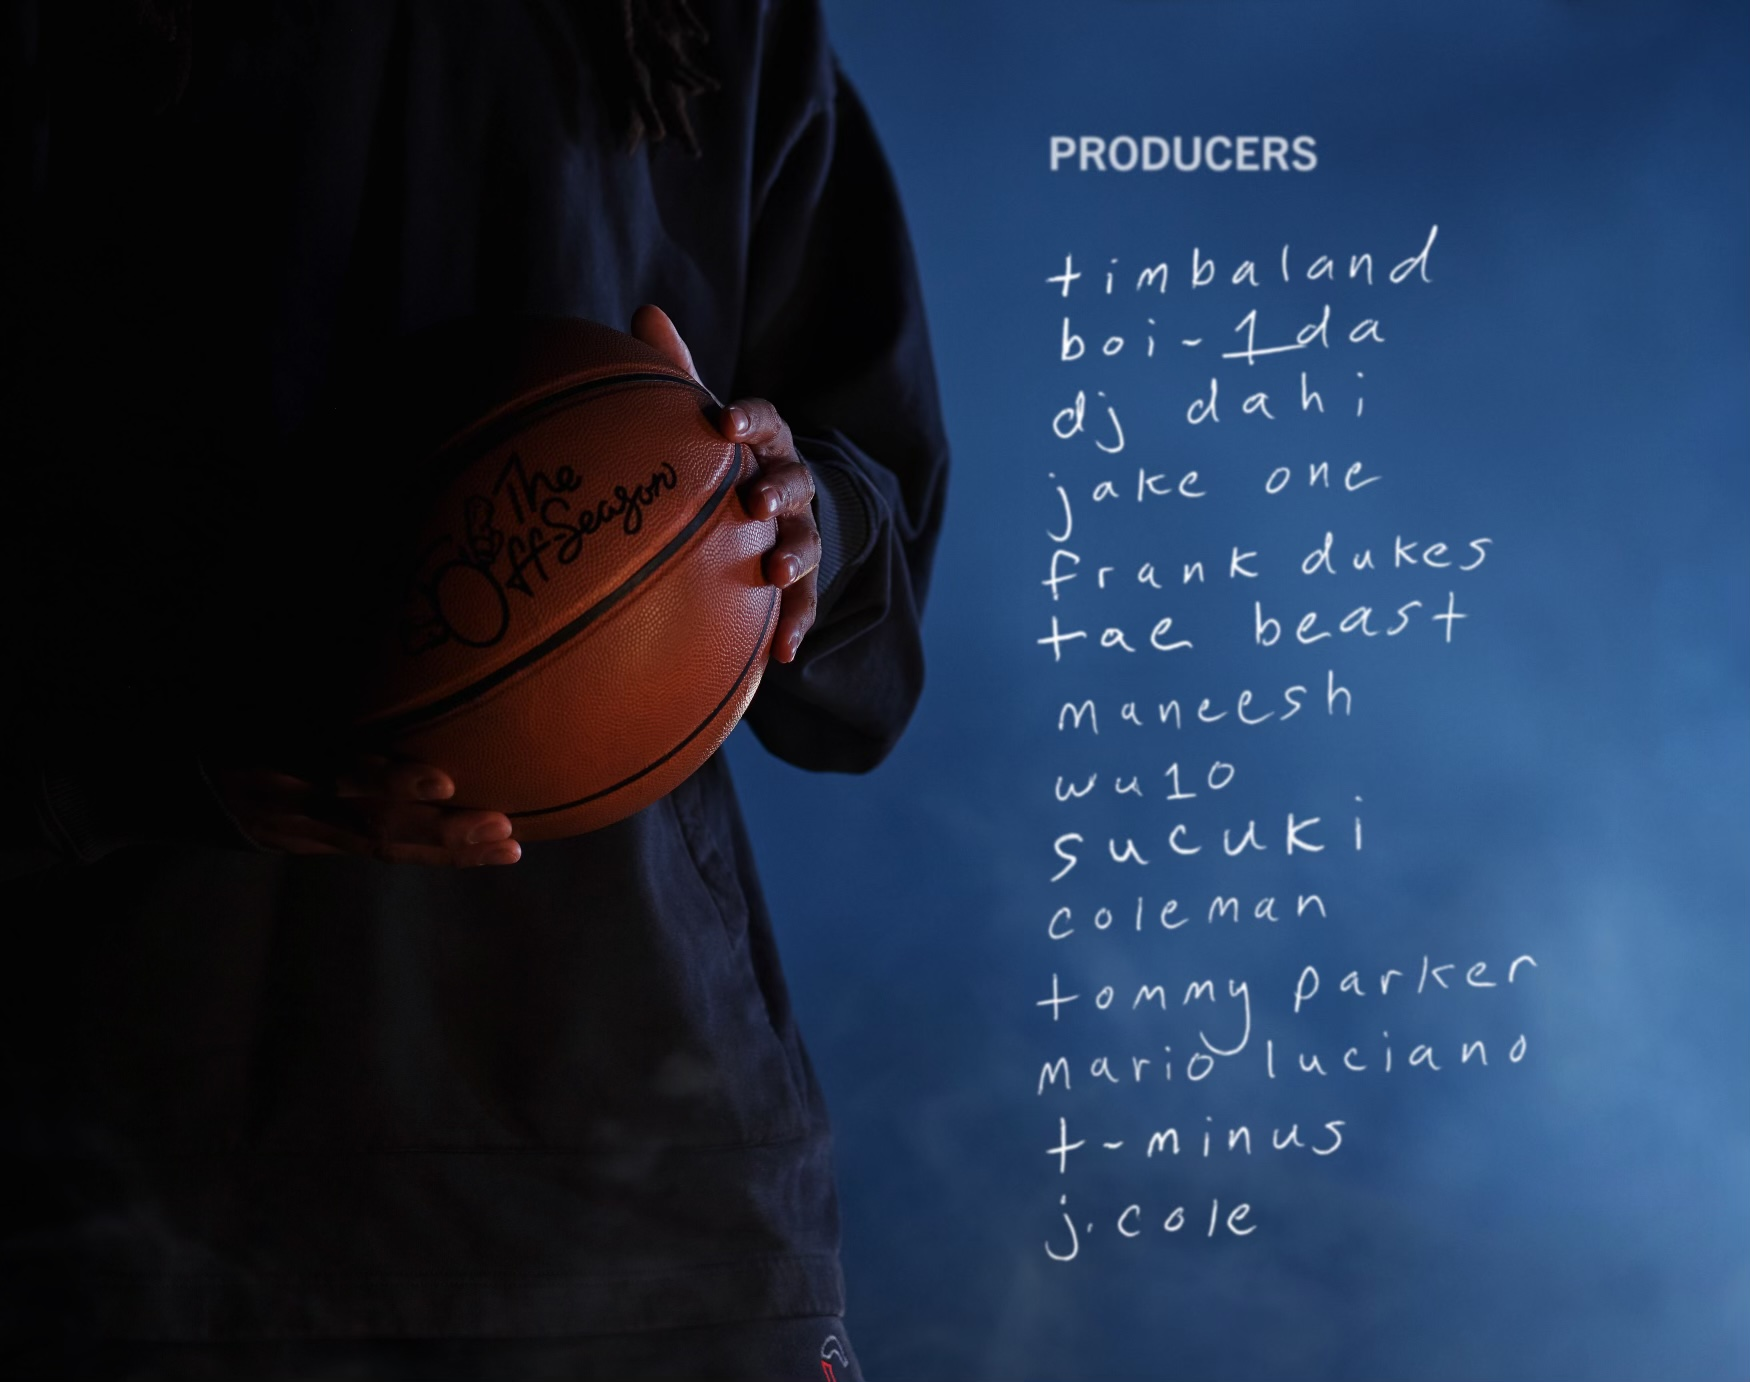 The Off-season producers credit